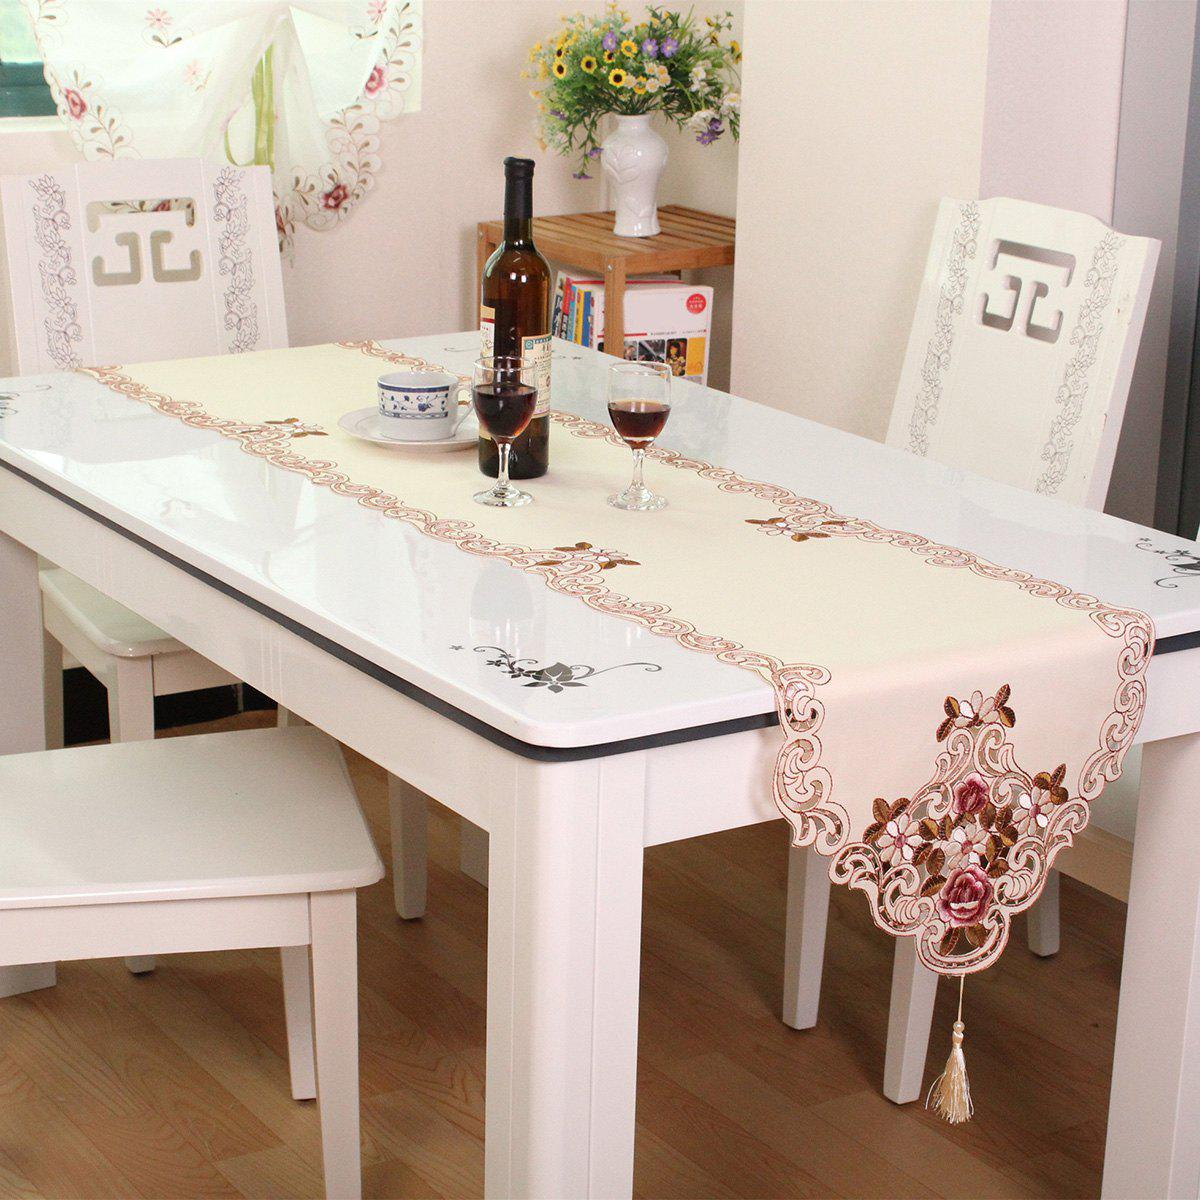 Satin Embroidered Home Decor Floral Table Runner